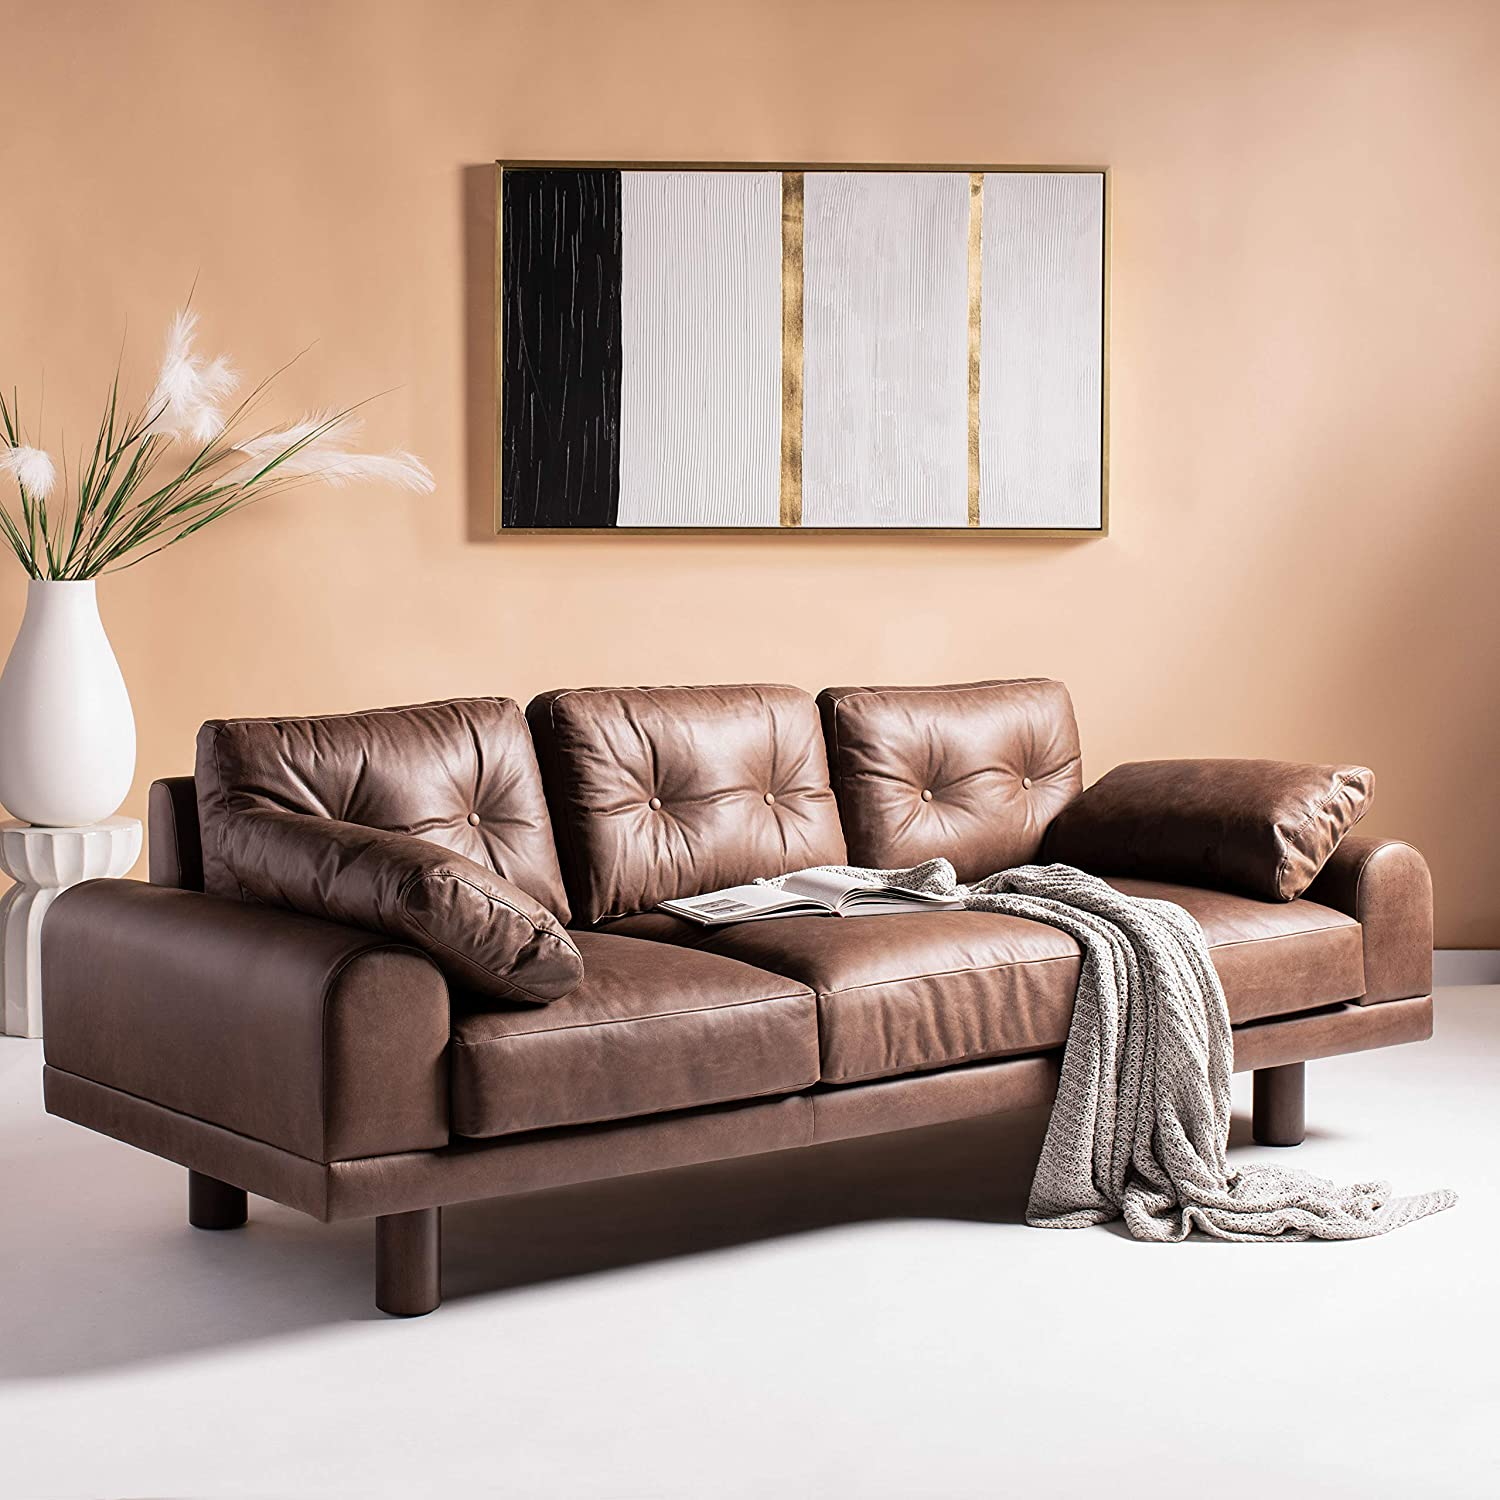 - Amazon.com: Safavieh Couture Home Scooter Mocha Italian Leather